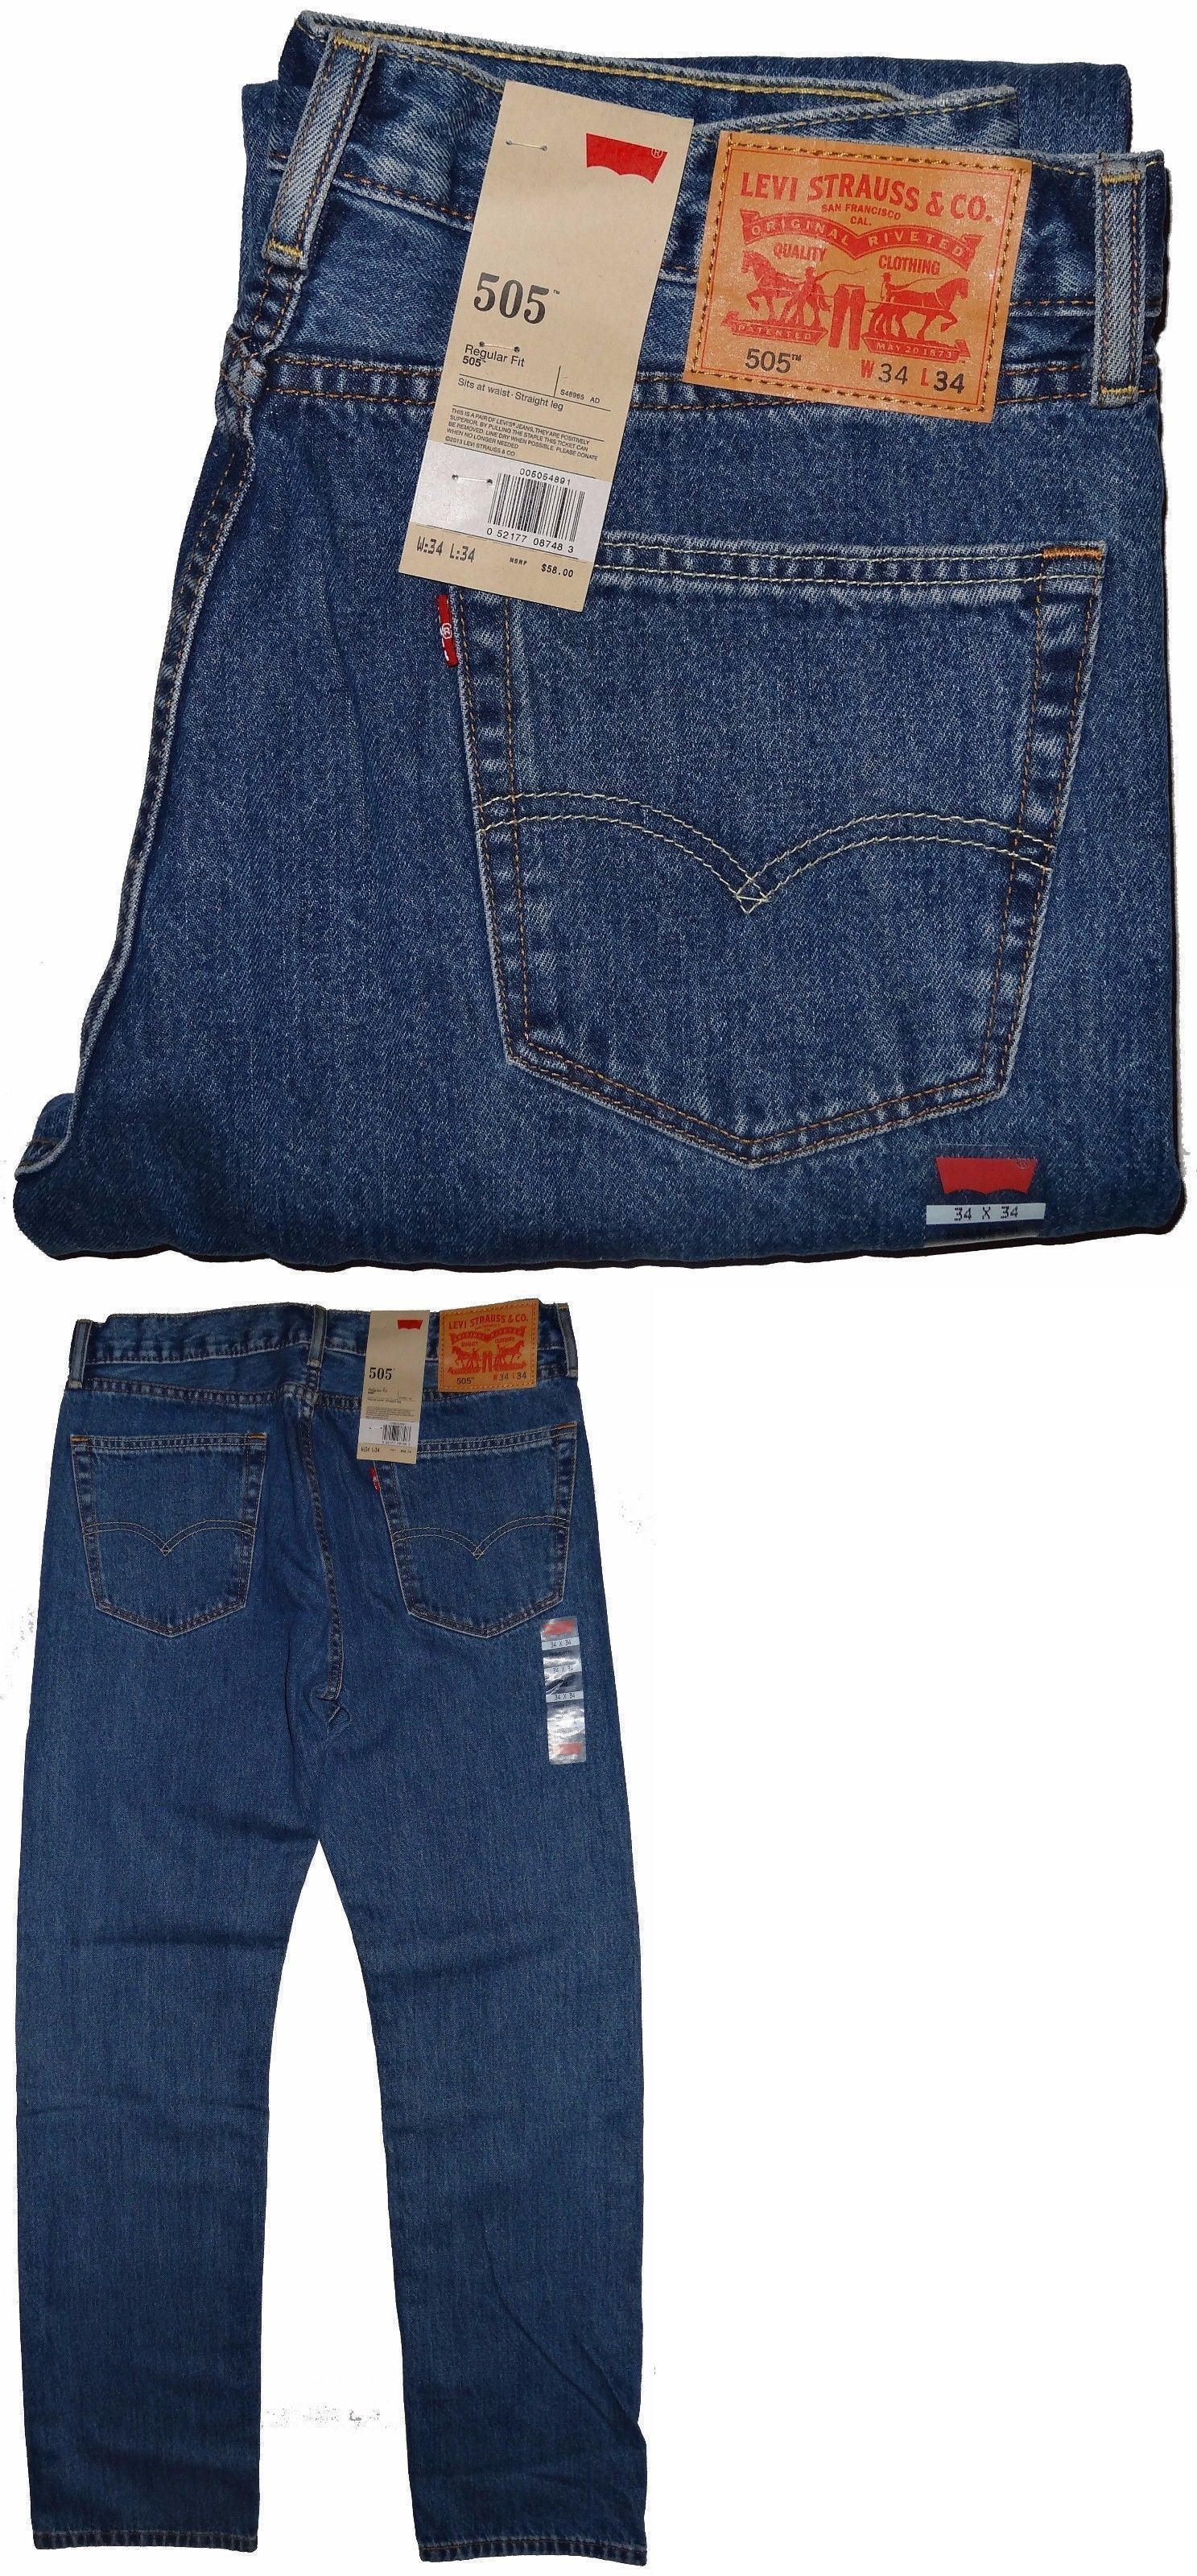 a1e94ccf262 Jeans 11483: Levis 505 Regular Fit Jeans Medium Blue Stonewash #4891 **^^  Many Sizes ^^** -> BUY IT NOW ONLY: $33.11 on #eBay #jeans #levis #regular  #medium ...